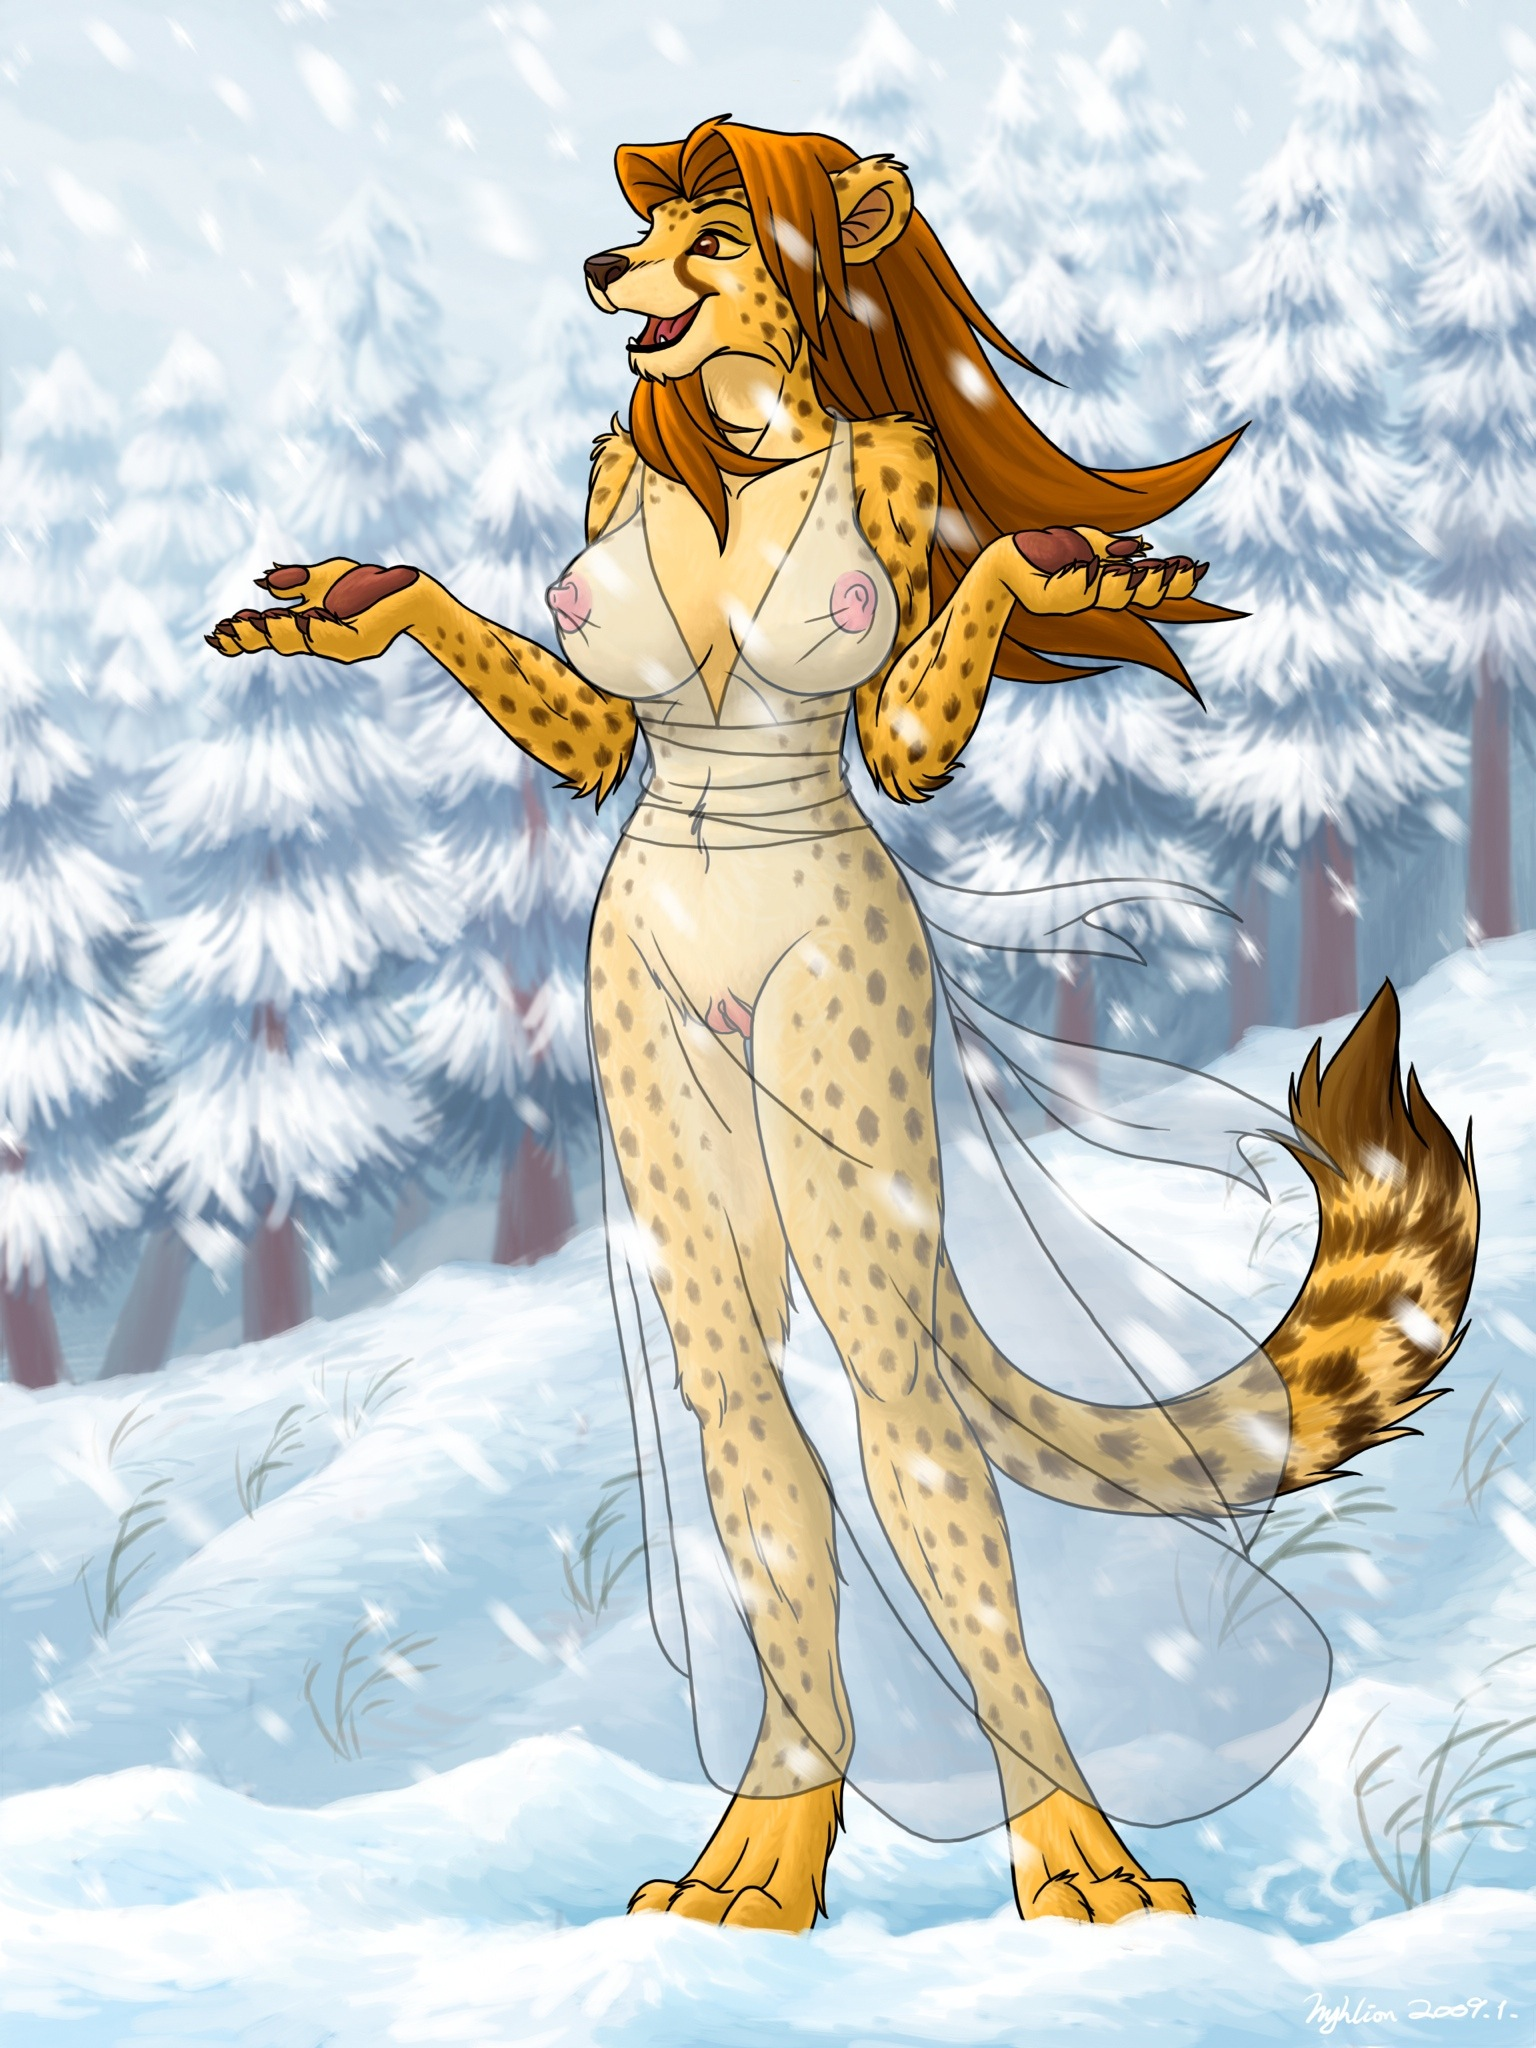 Winter Lady robe translucent